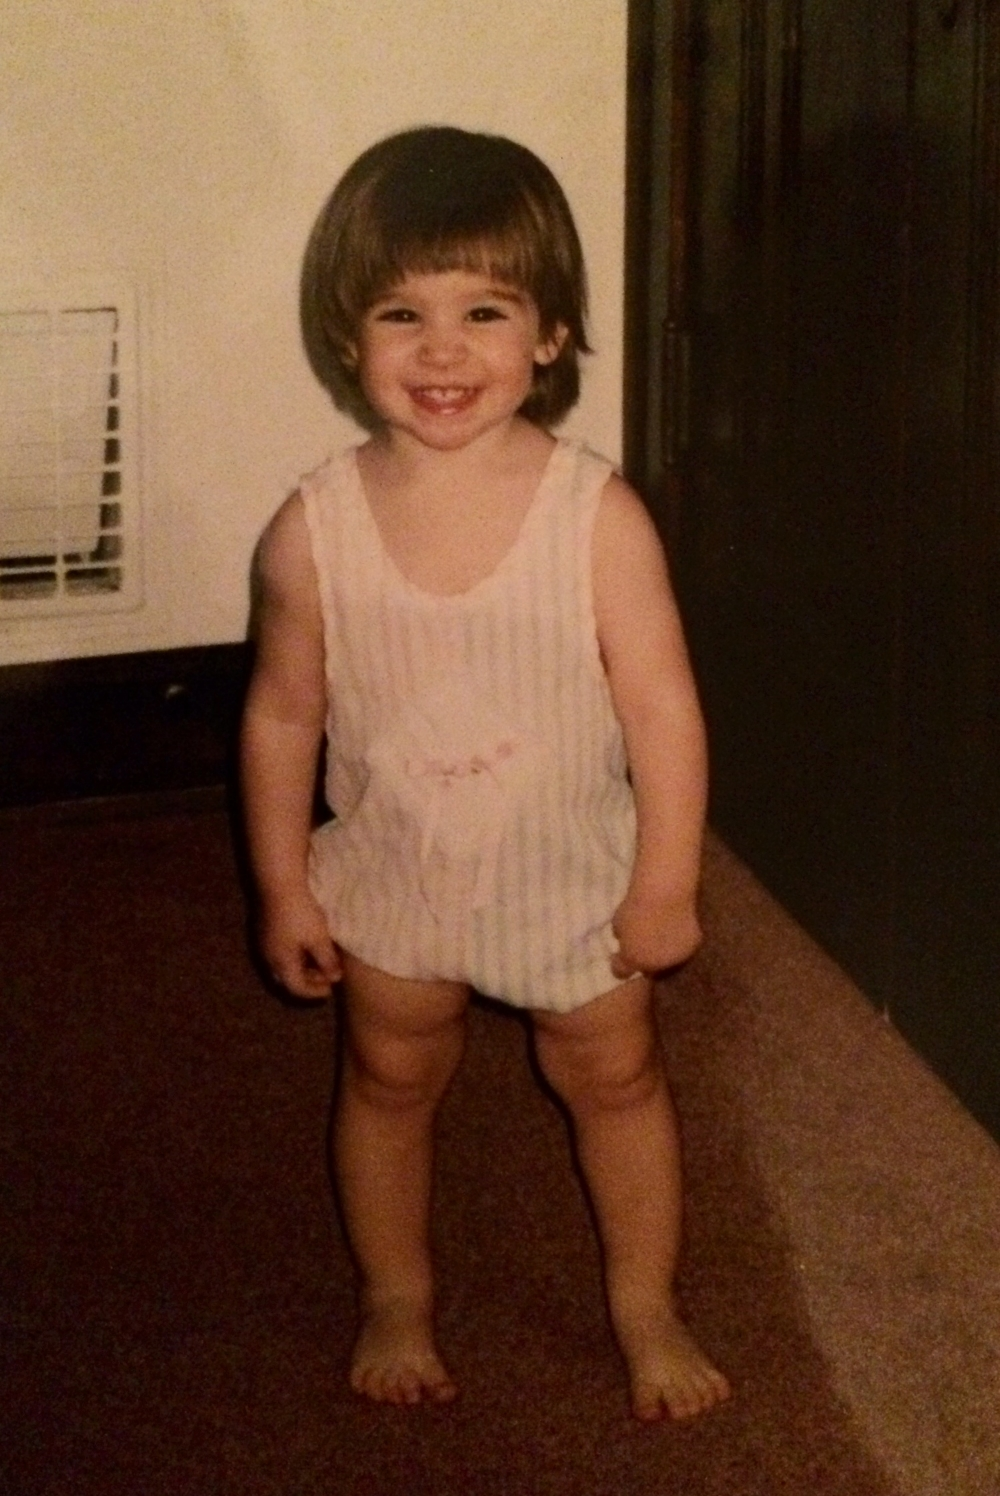 Cheesin' from a young age...